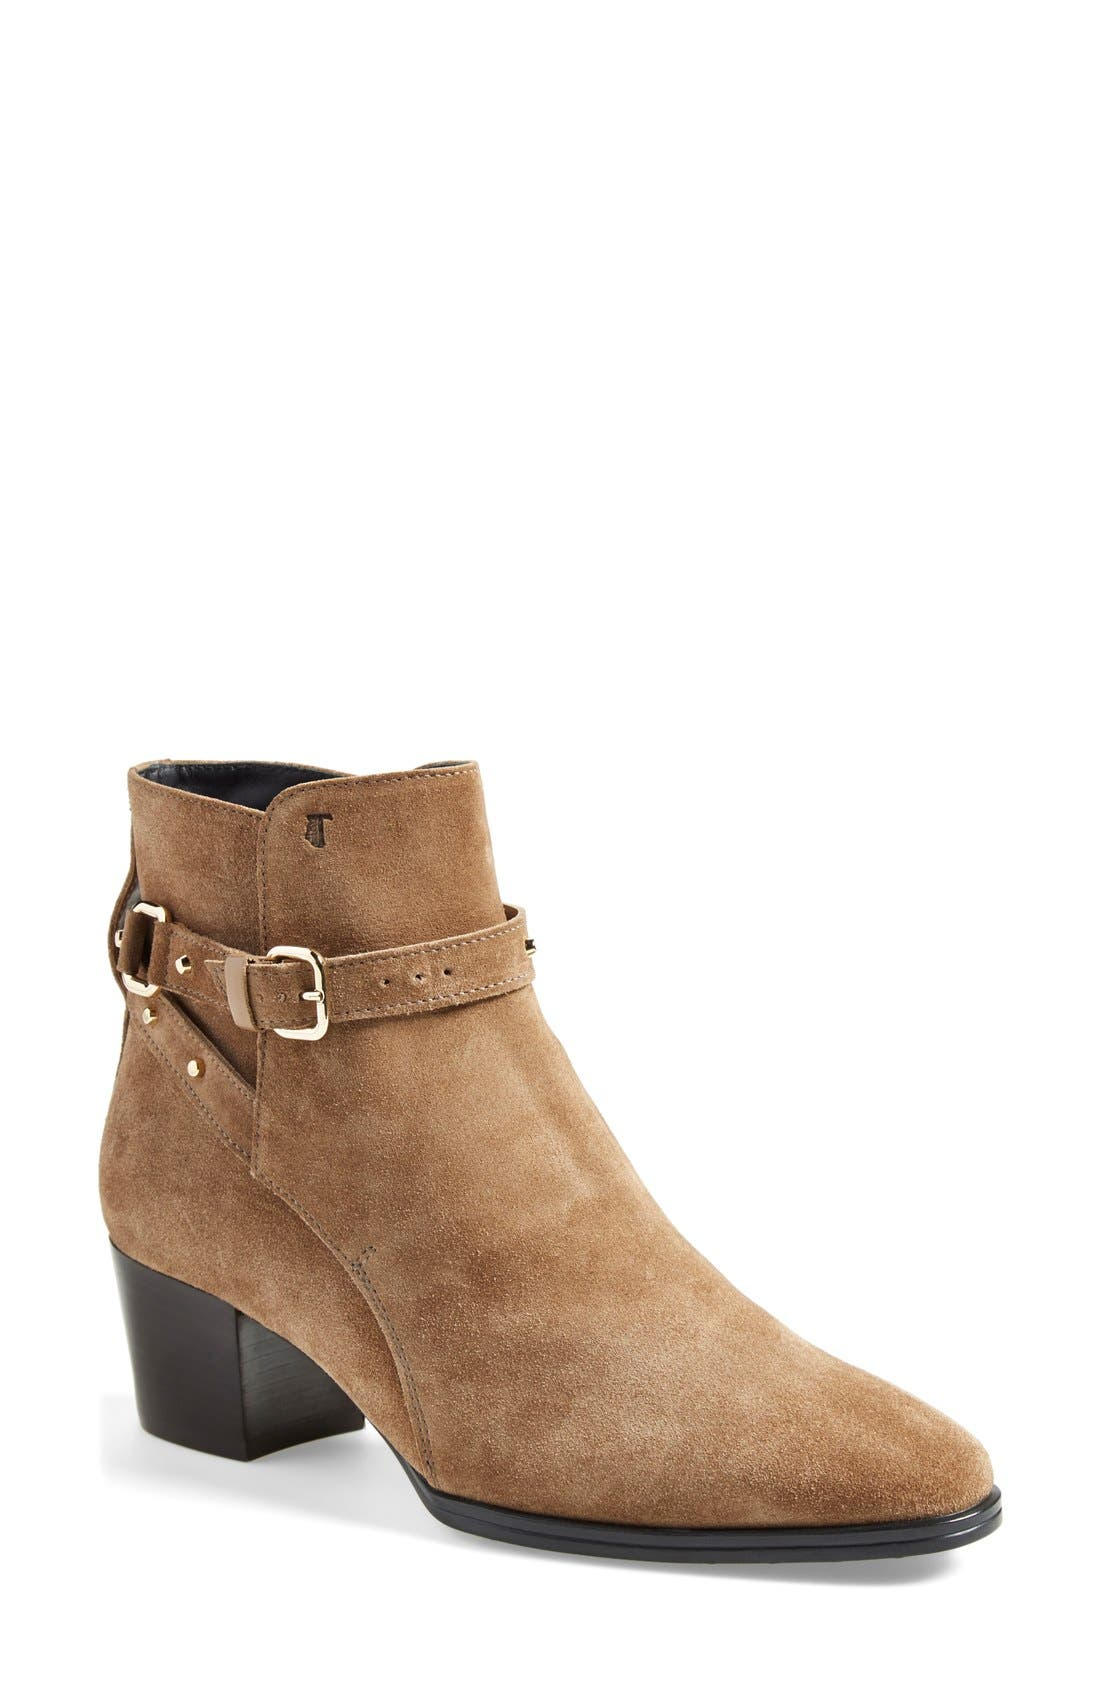 Alternate Image 1 Selected - Tod's Studded Bootie (Women)